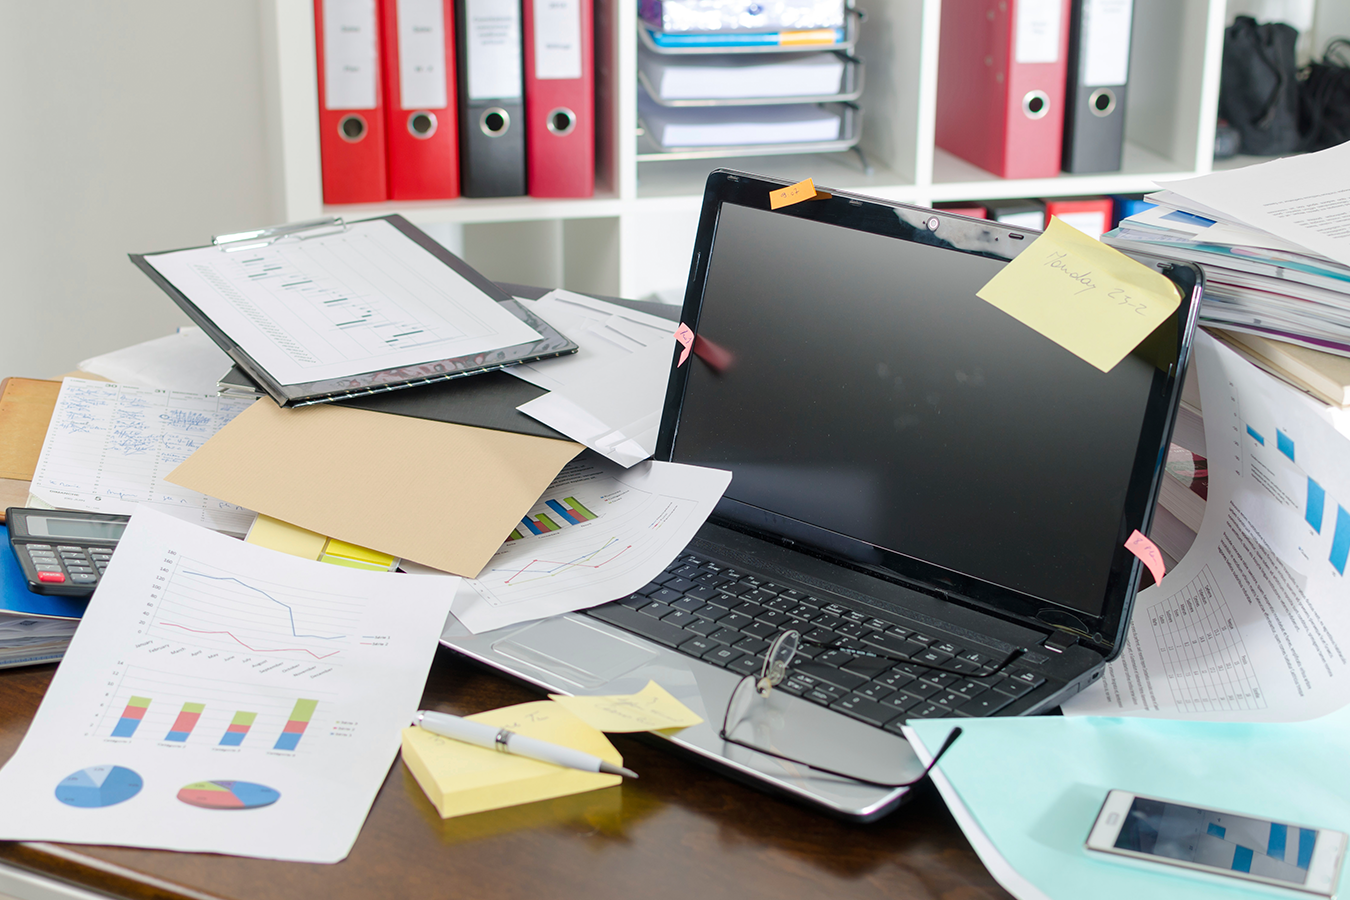 5 hacks to increase productivity by organizing your workspace